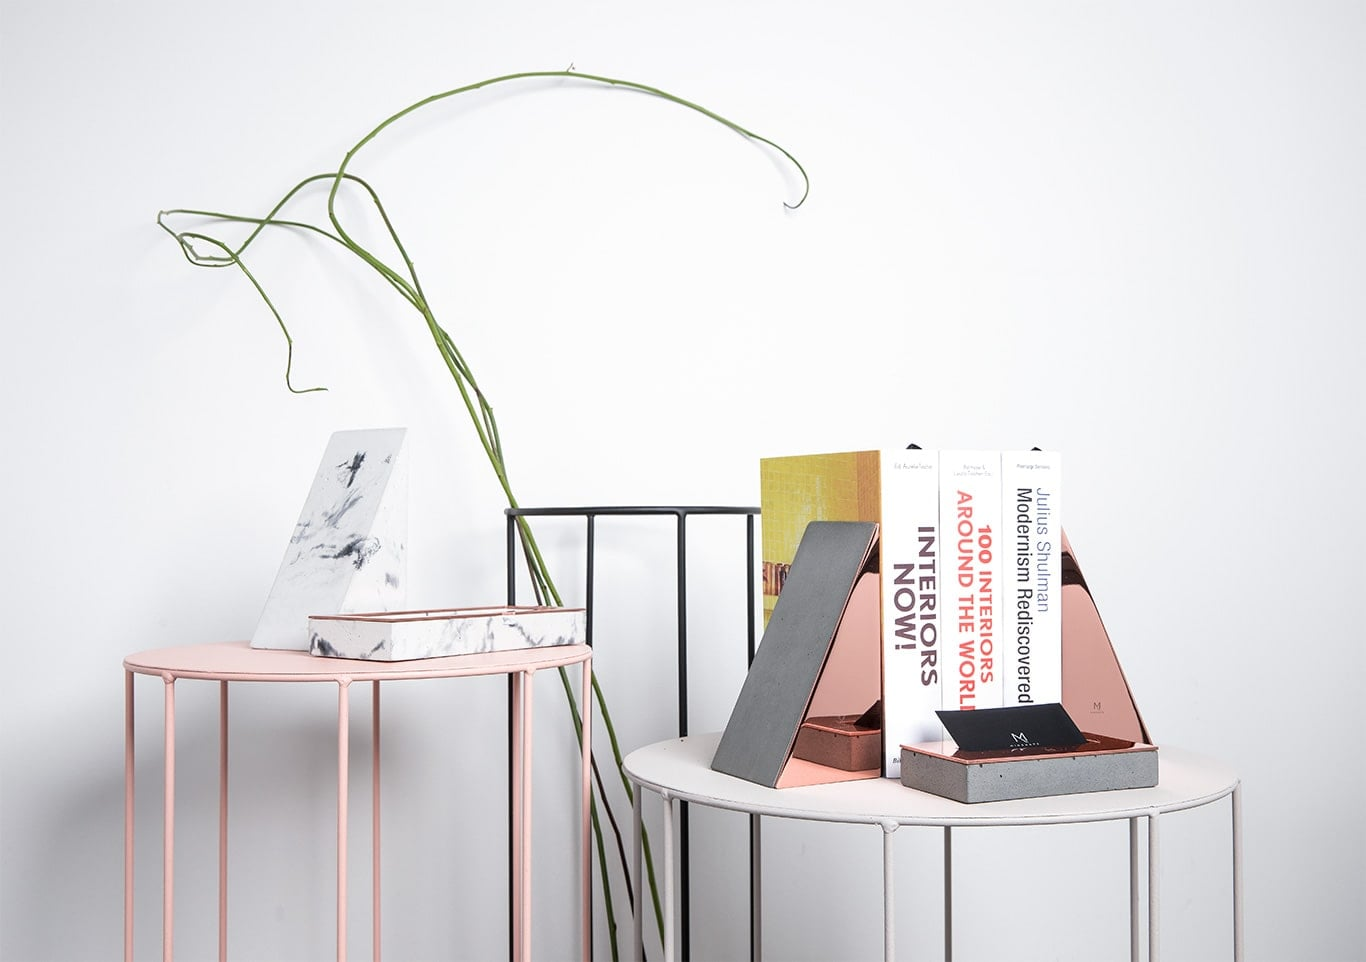 Concrete & Copper Bookends by Minshape (Set of 2 — MBH1.1)